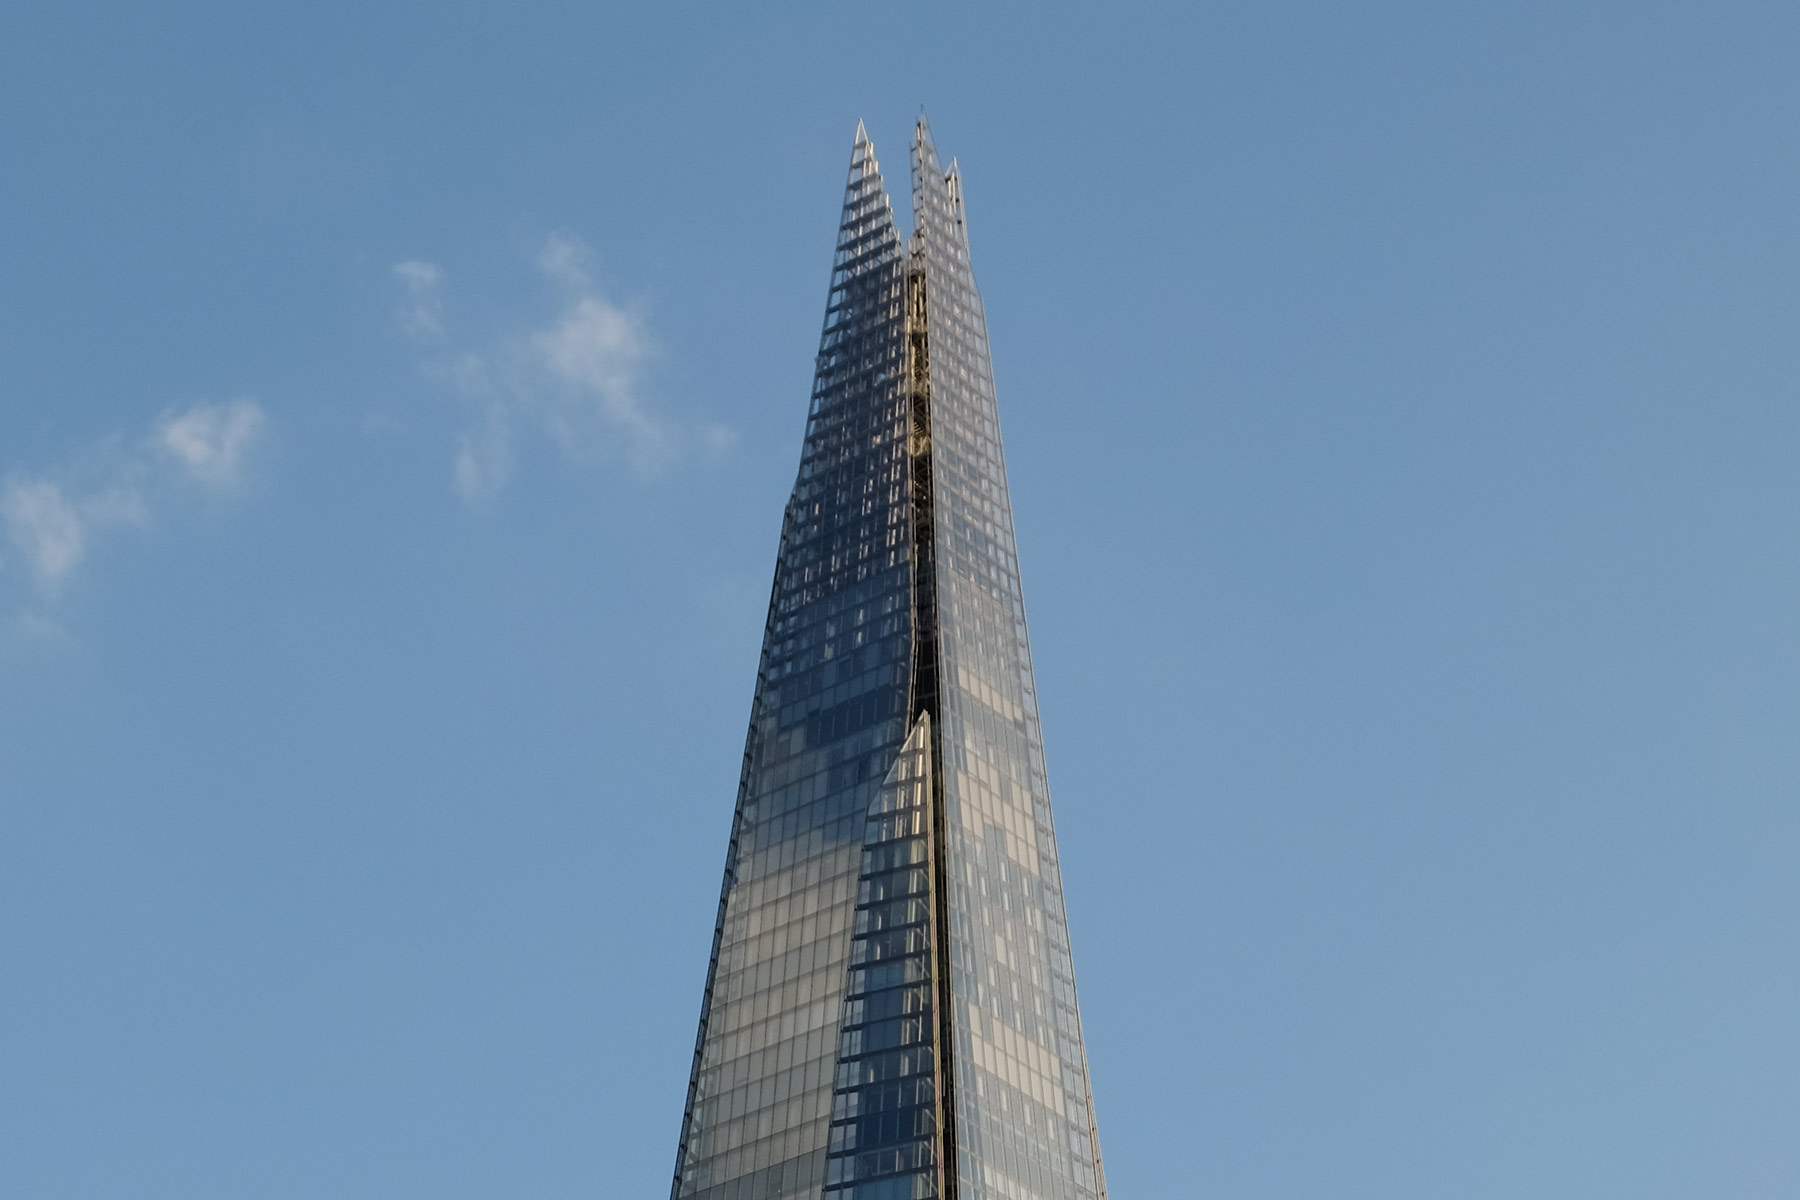 Außenansicht The Shard in London, England